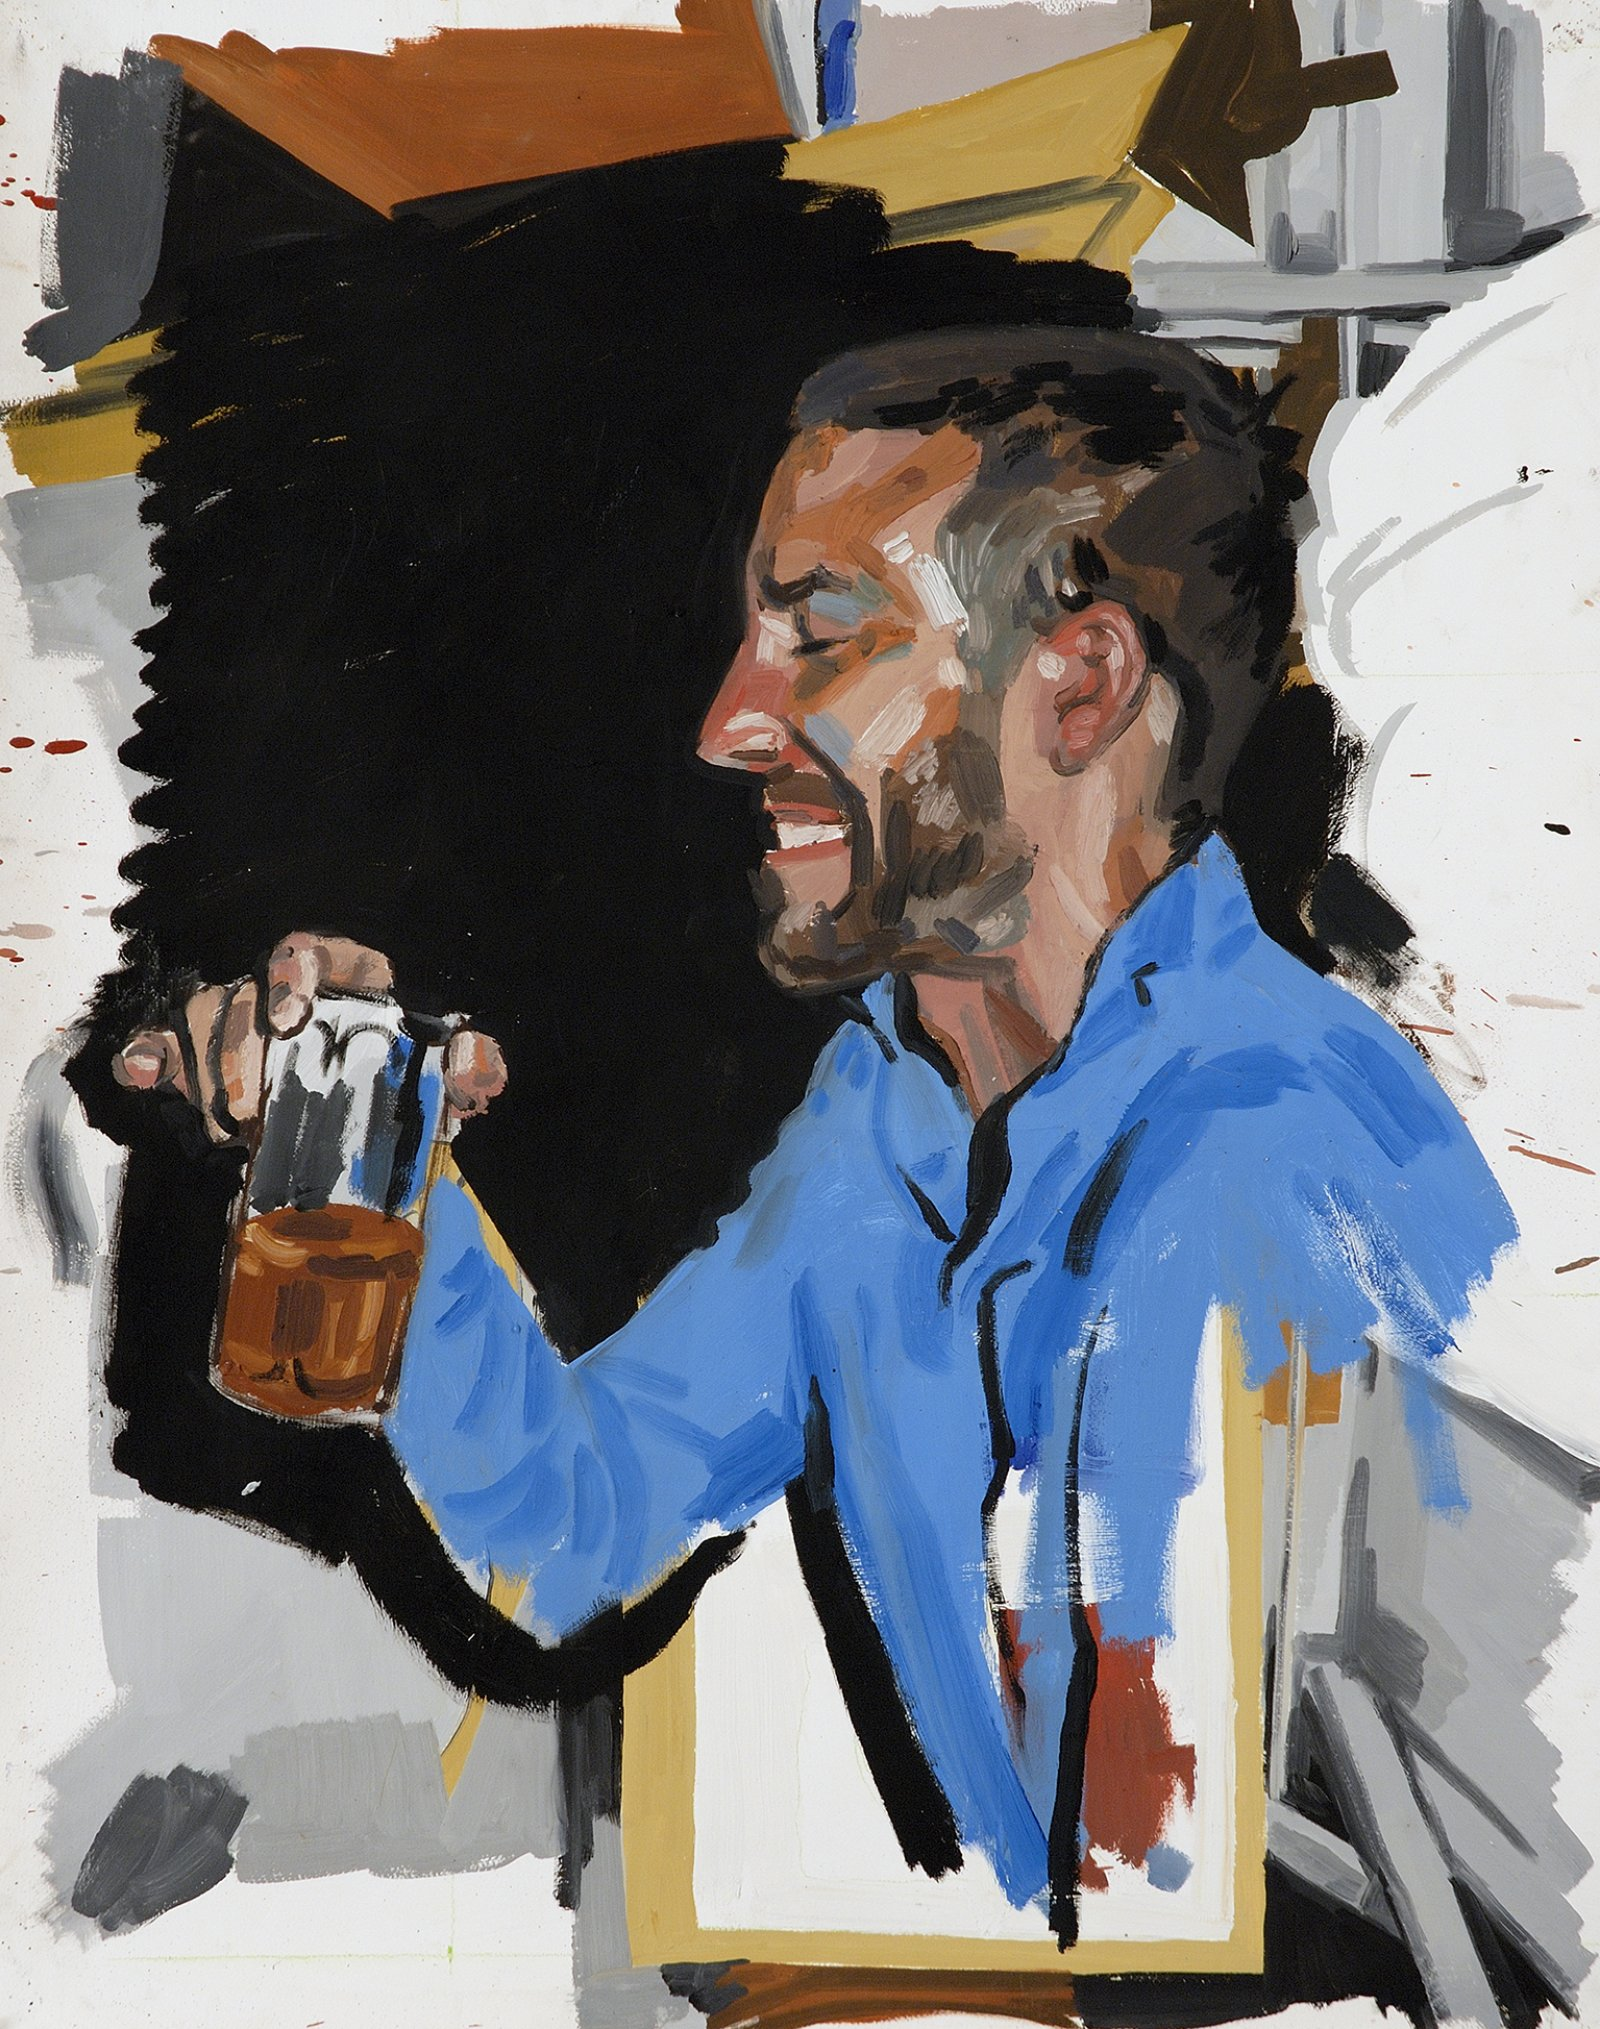 Damian Moppett, Self Portrait Drinking Beer in Dawson City, 2006, oil on paper, 44 x 35 in. (111 x 90 cm) by Damian Moppett